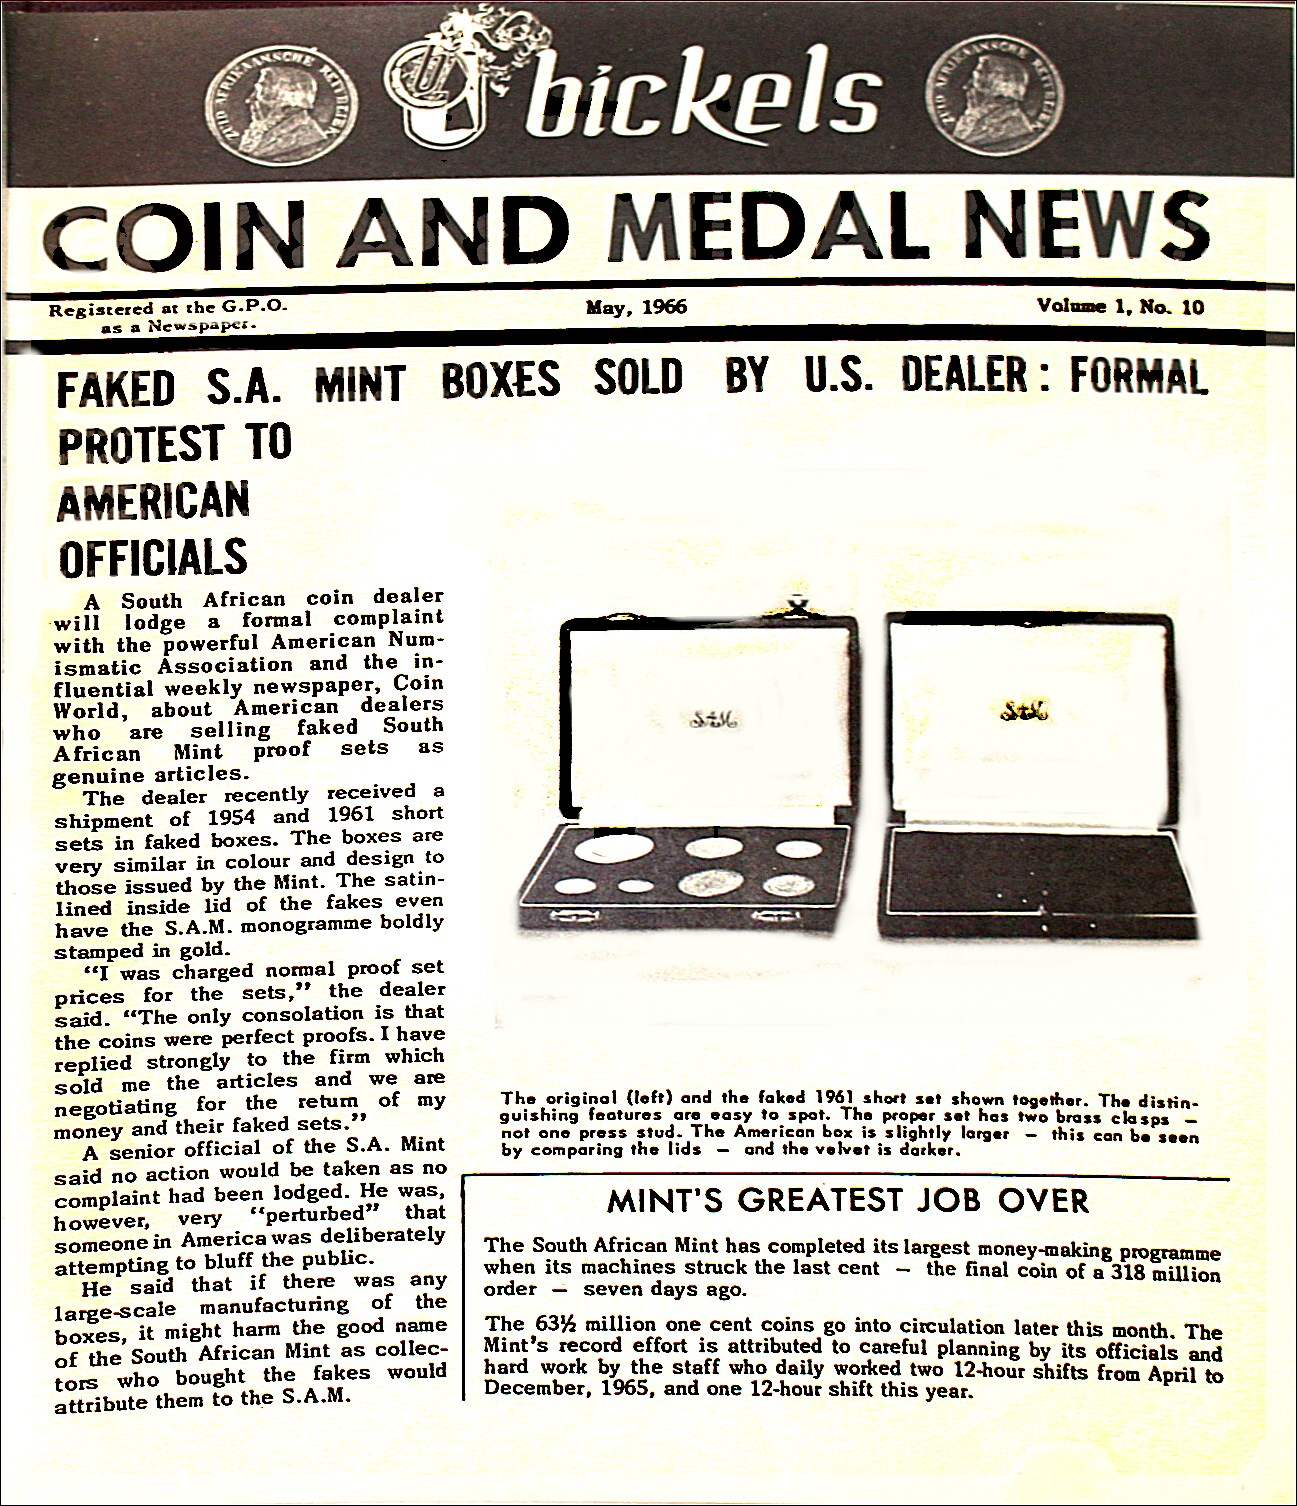 Bickels Coin & Medal News May 1966 Vol 1 No 10